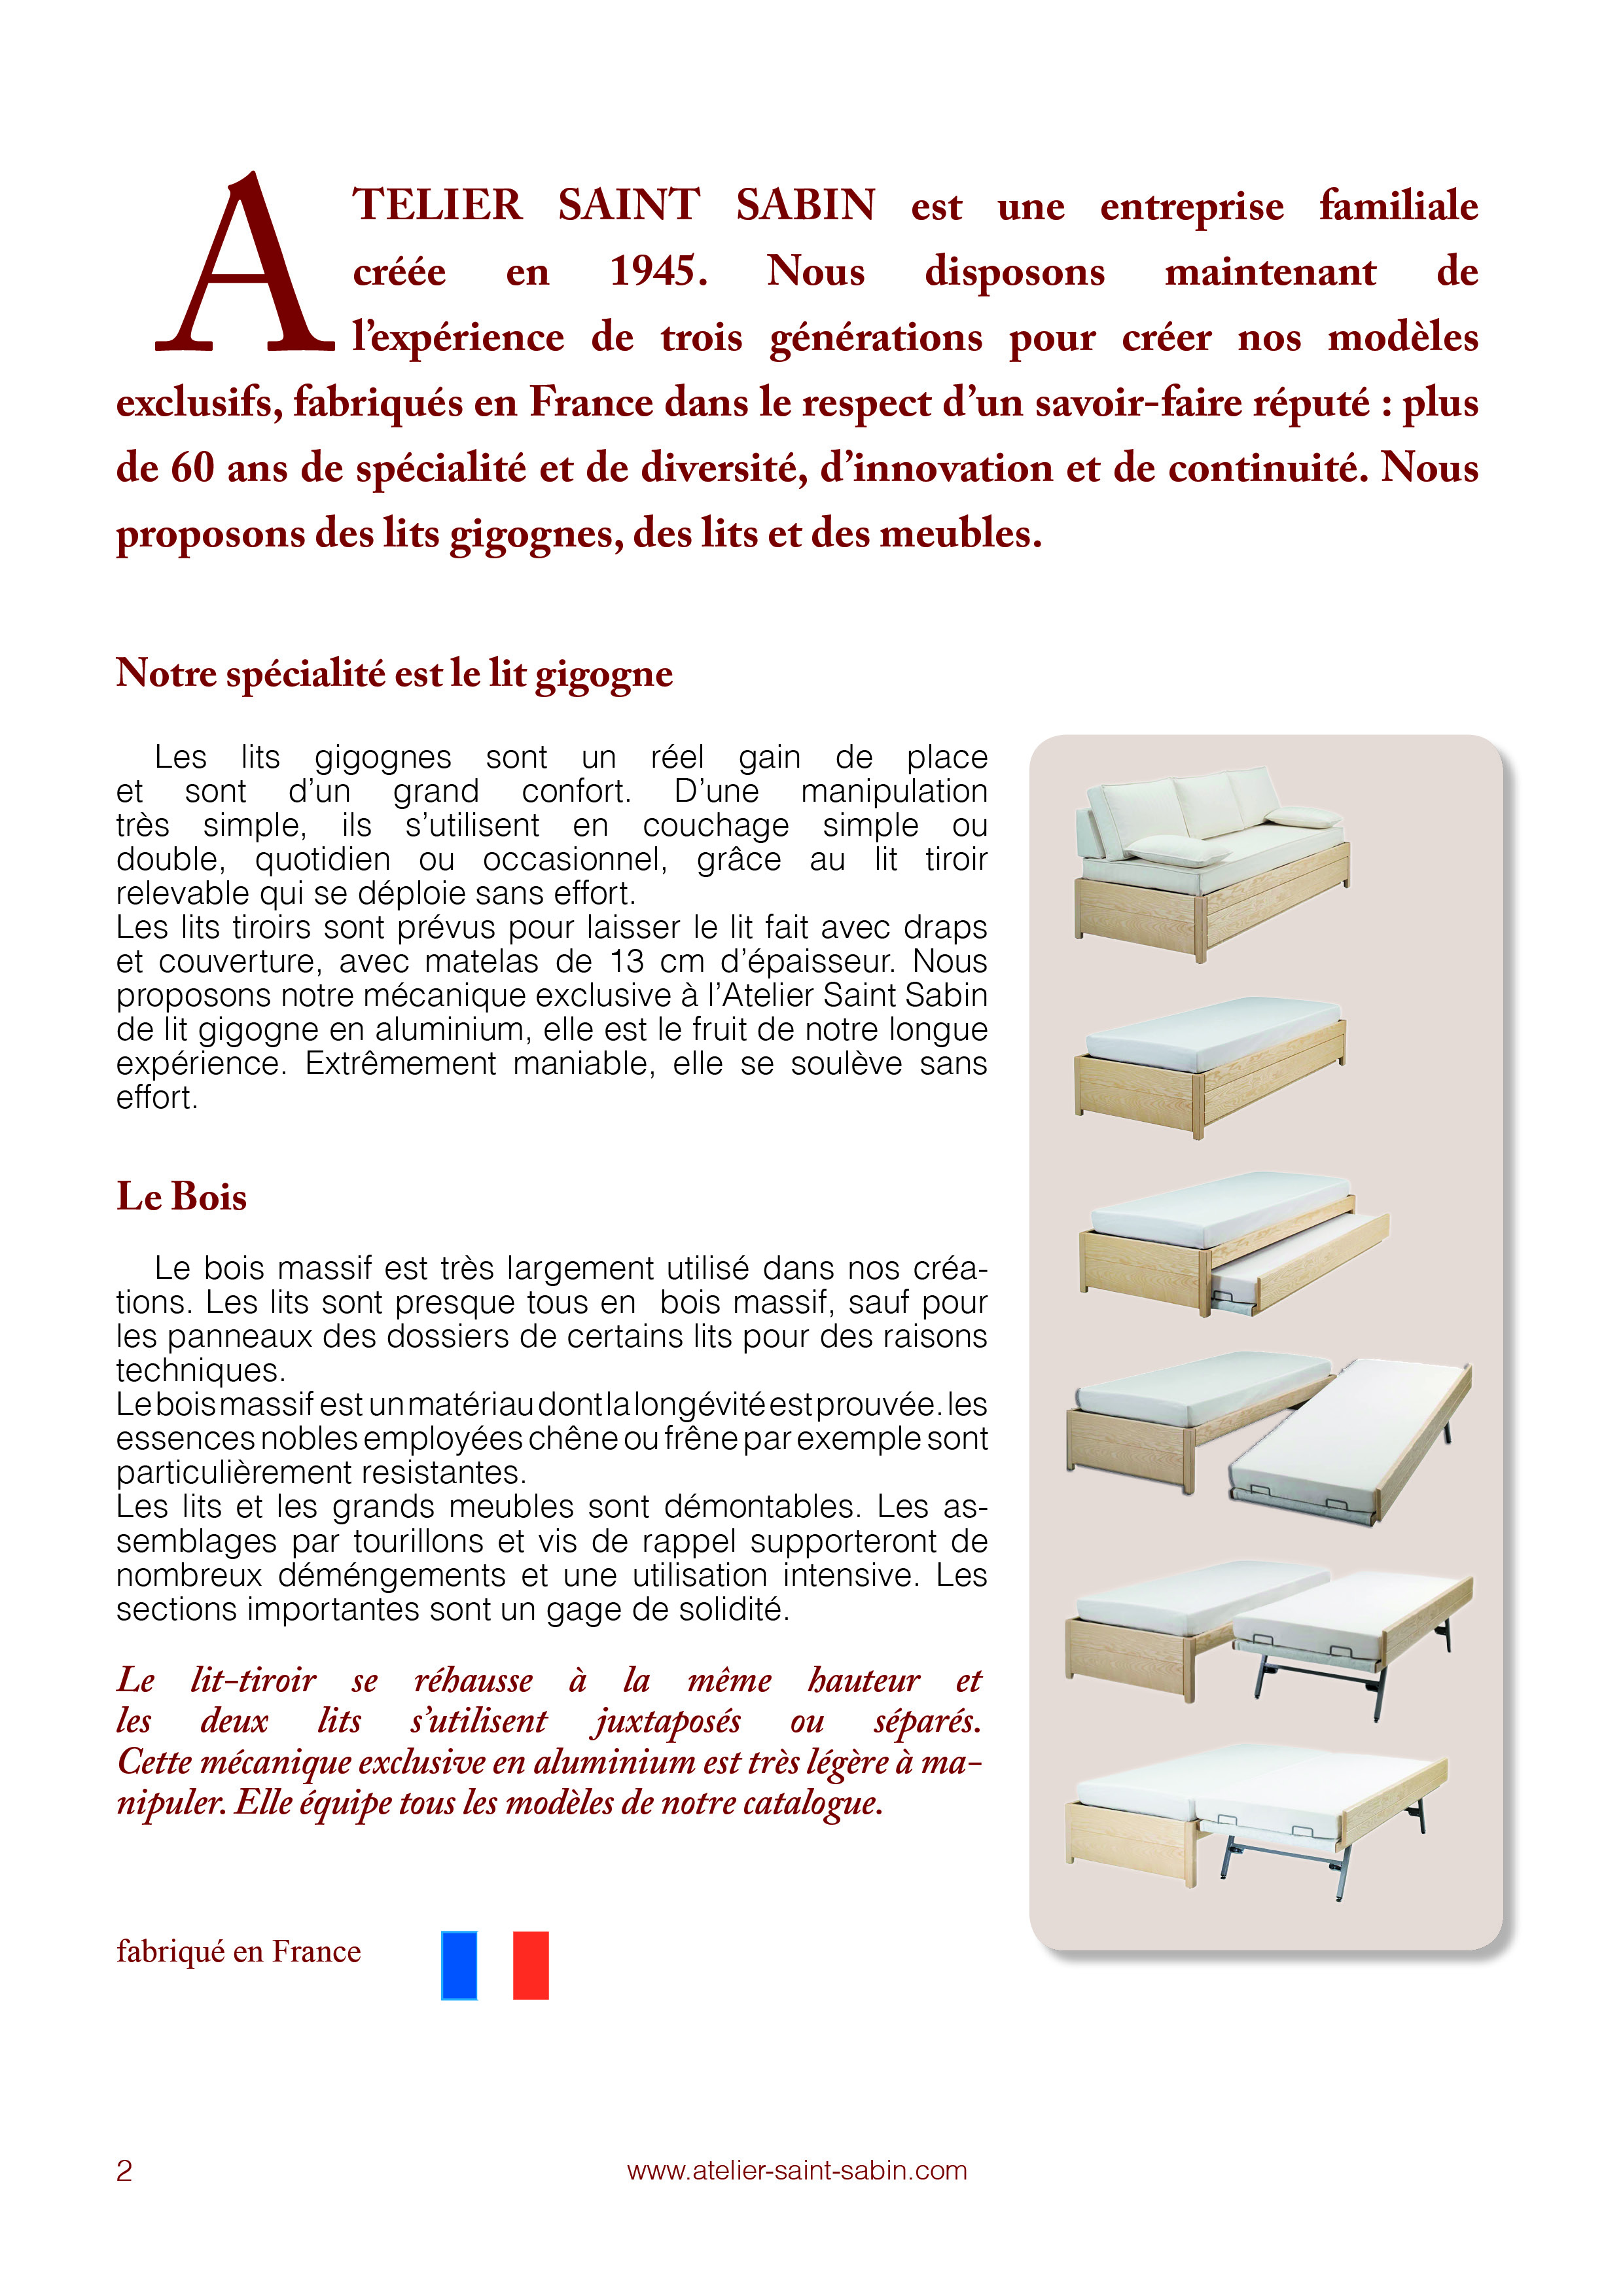 Catelogue pour un magasin de literie